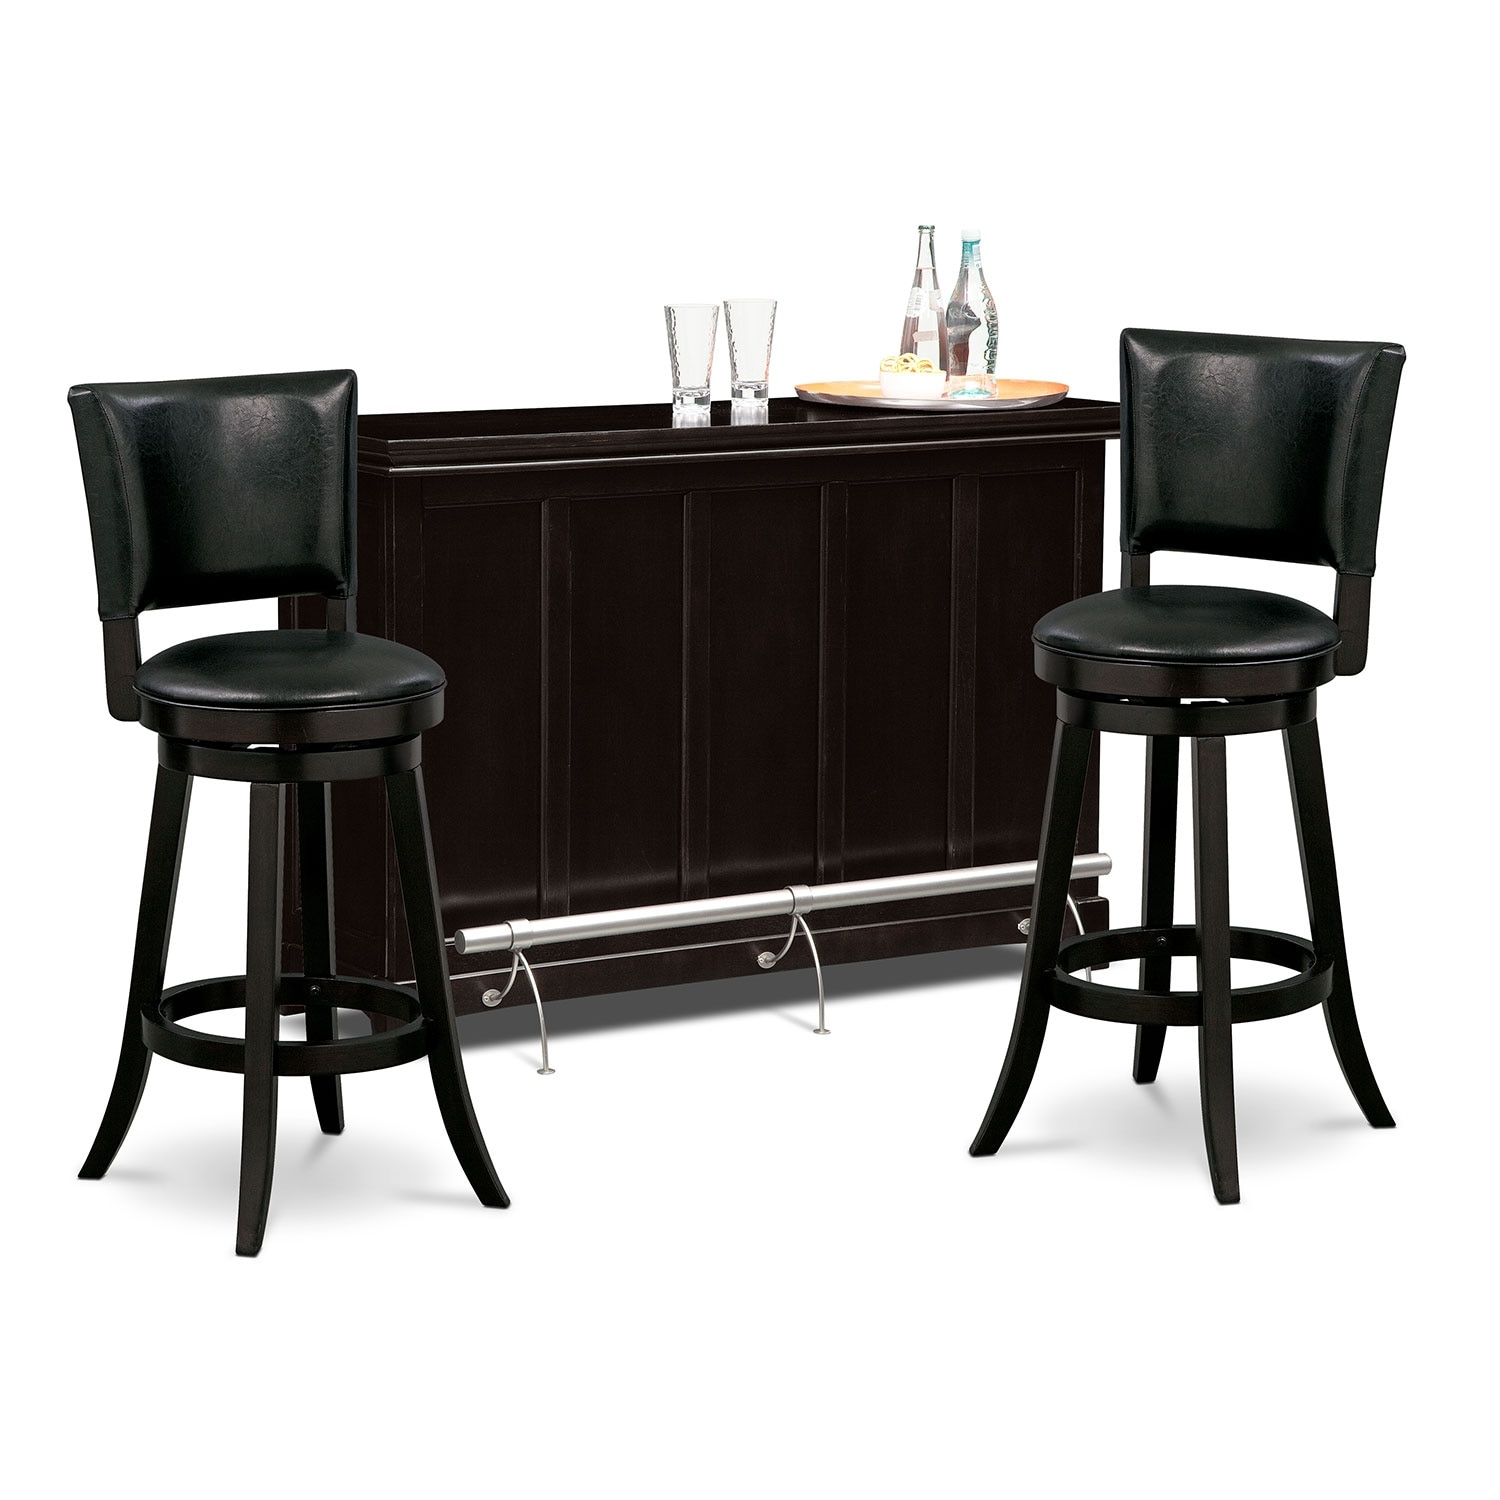 Bond ii locke 3 pc bar set for 3 pc dining room set